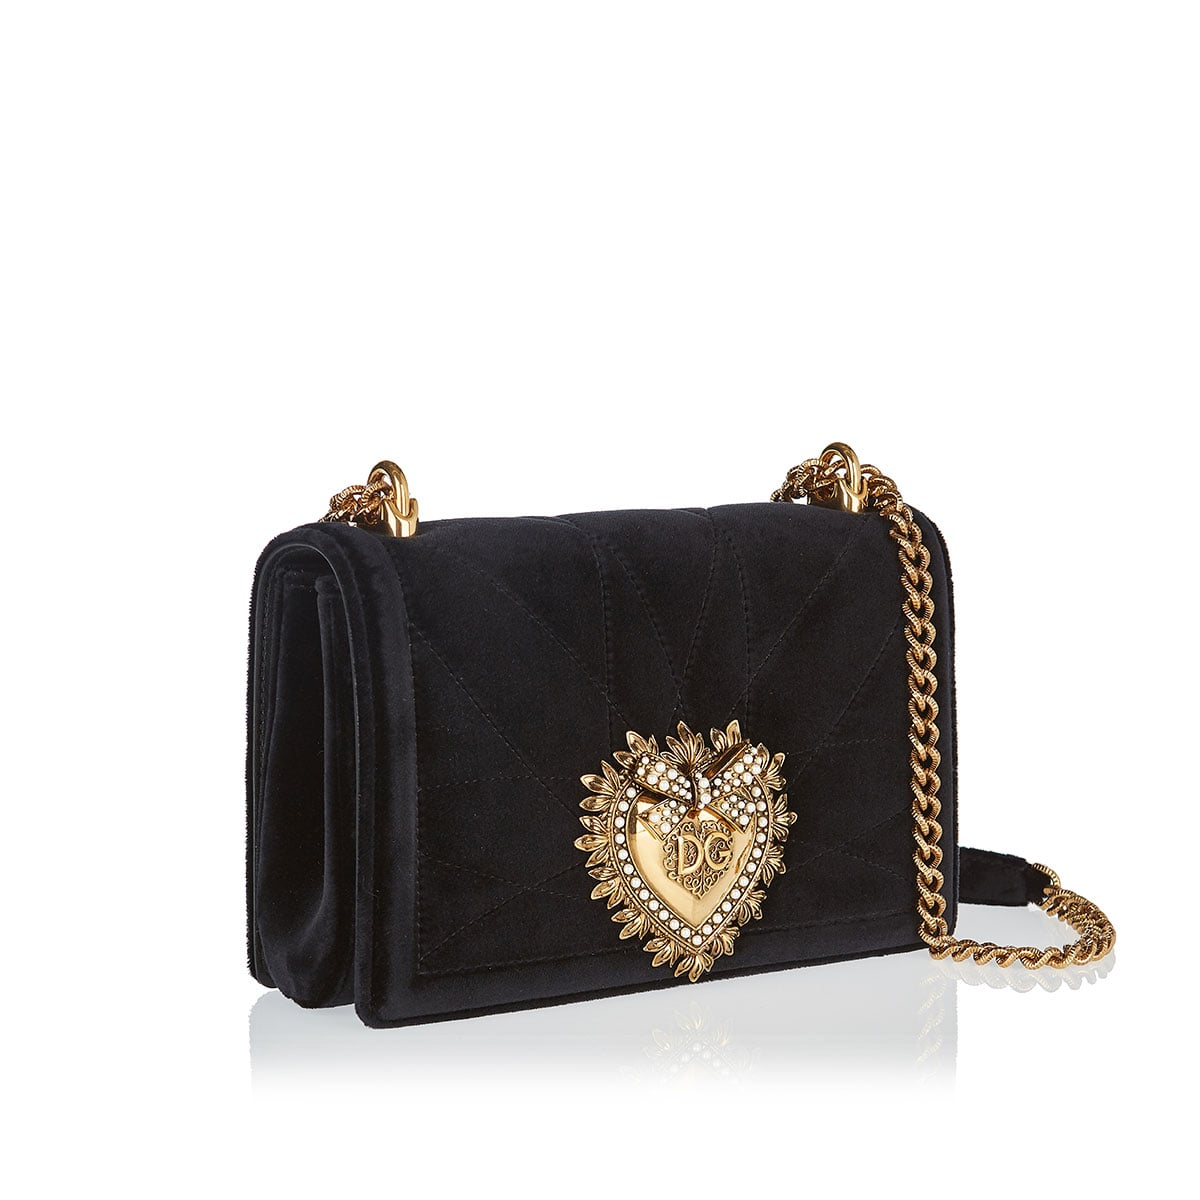 Medium Devotion velvet bag